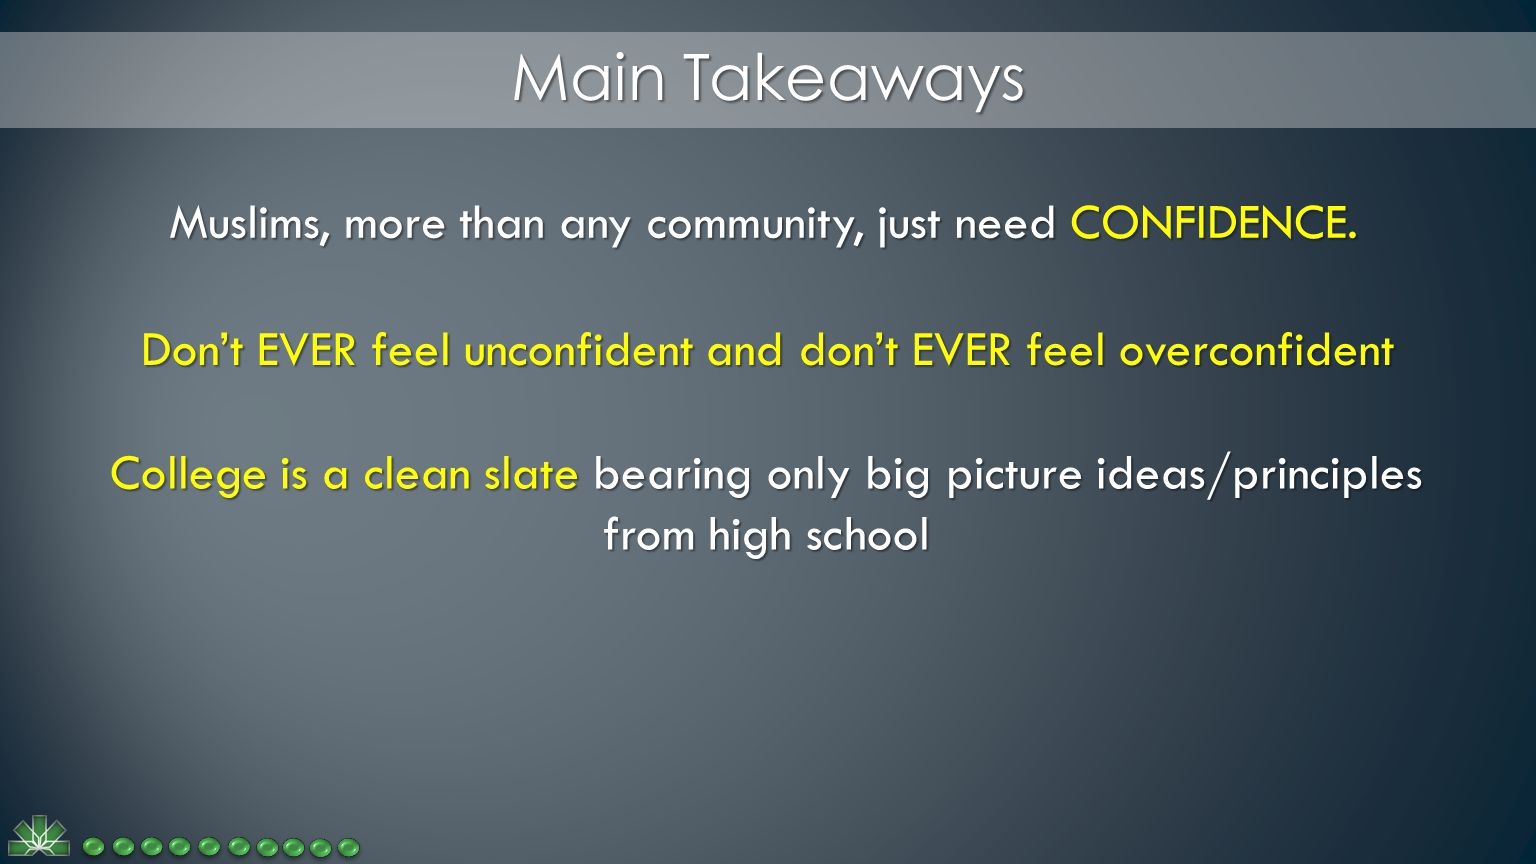 Main Takeaways College is a clean slate bearing only big picture ideas/principles from high school Muslims, more than any community, just need CONFIDENCE.